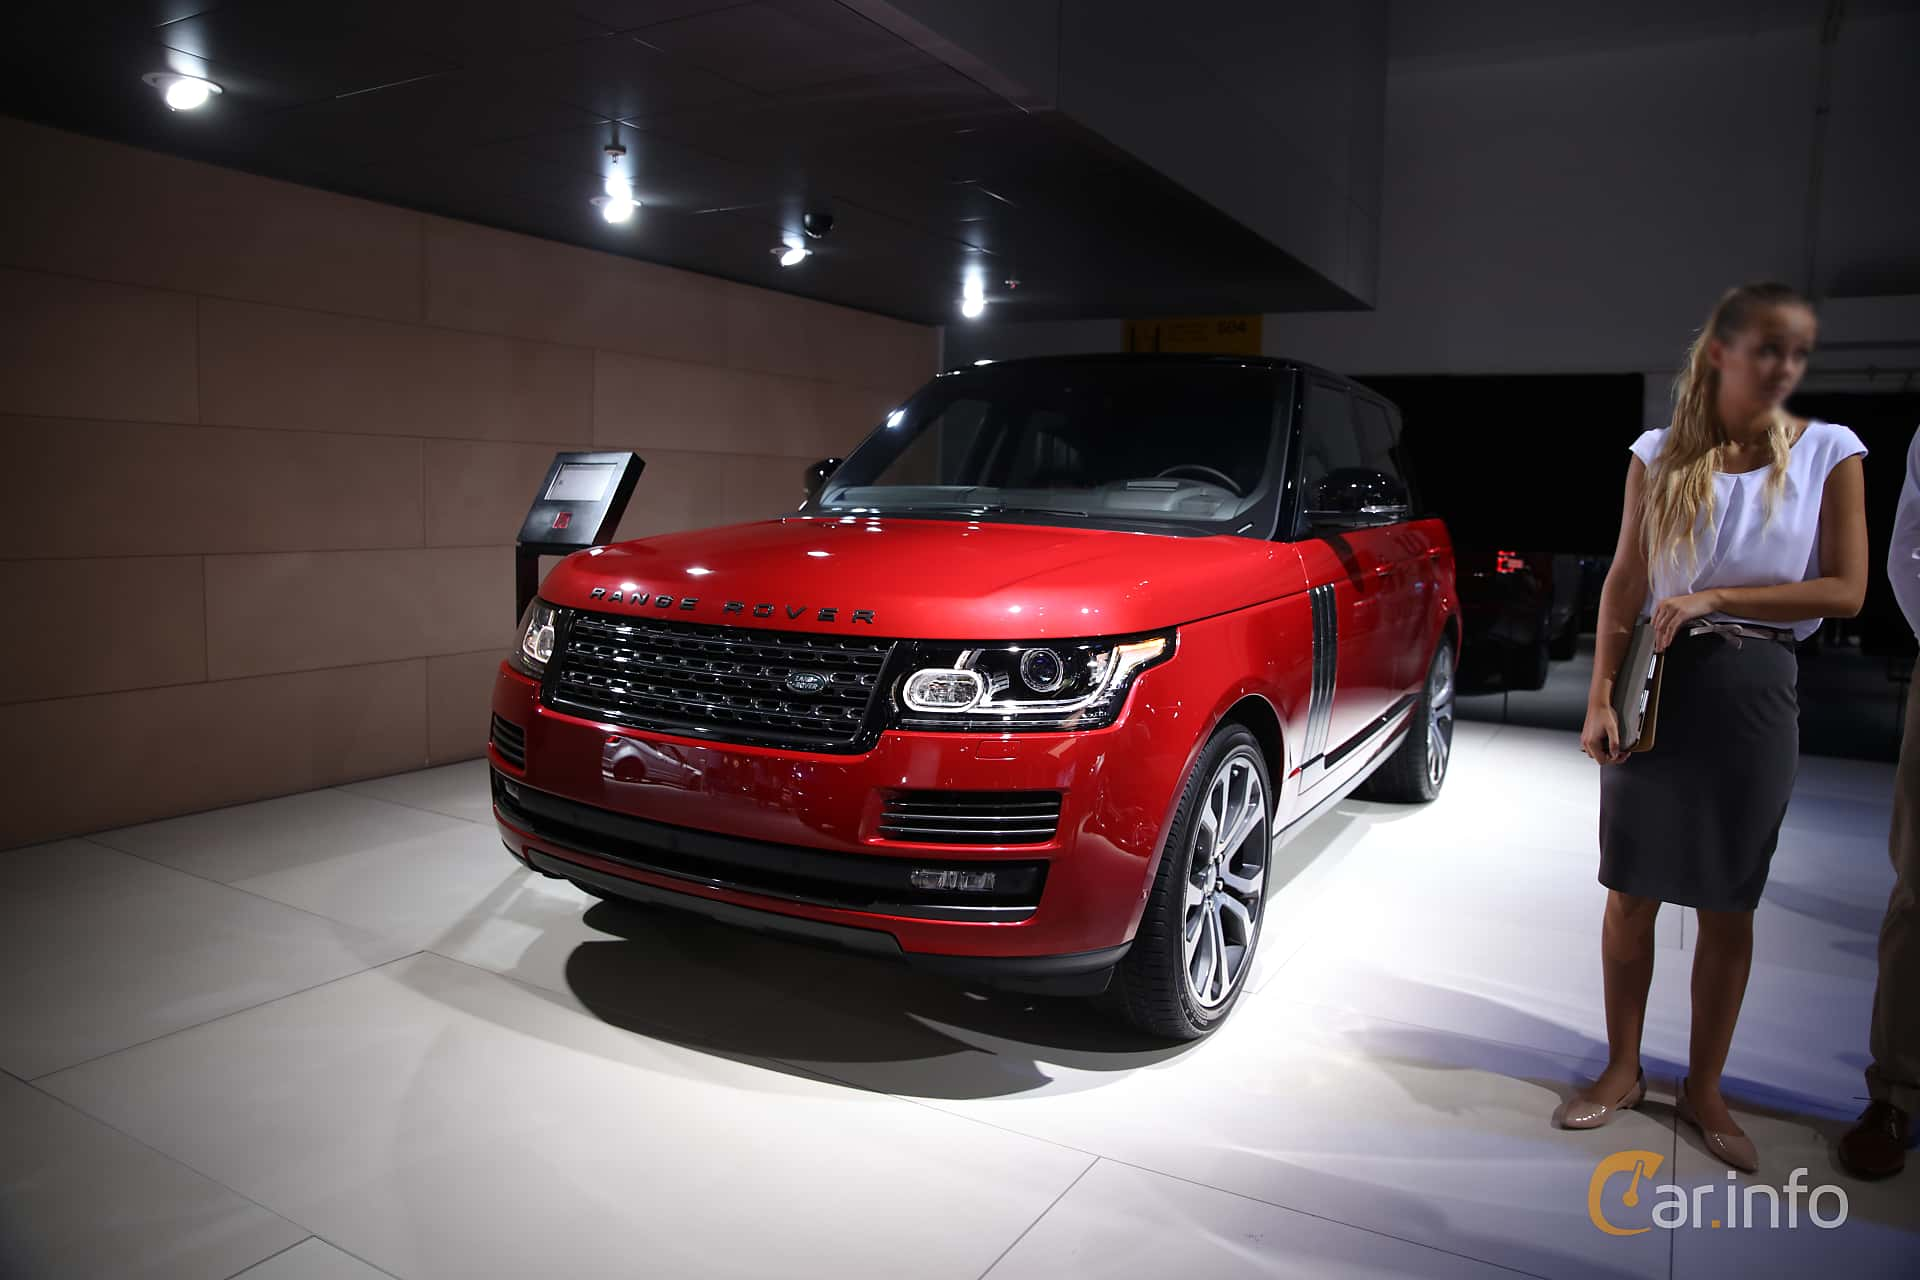 Front/Side  of Land Rover Range Rover 5.0 V8 4WD Automatic, 550ps, 2017 at IAA 2017